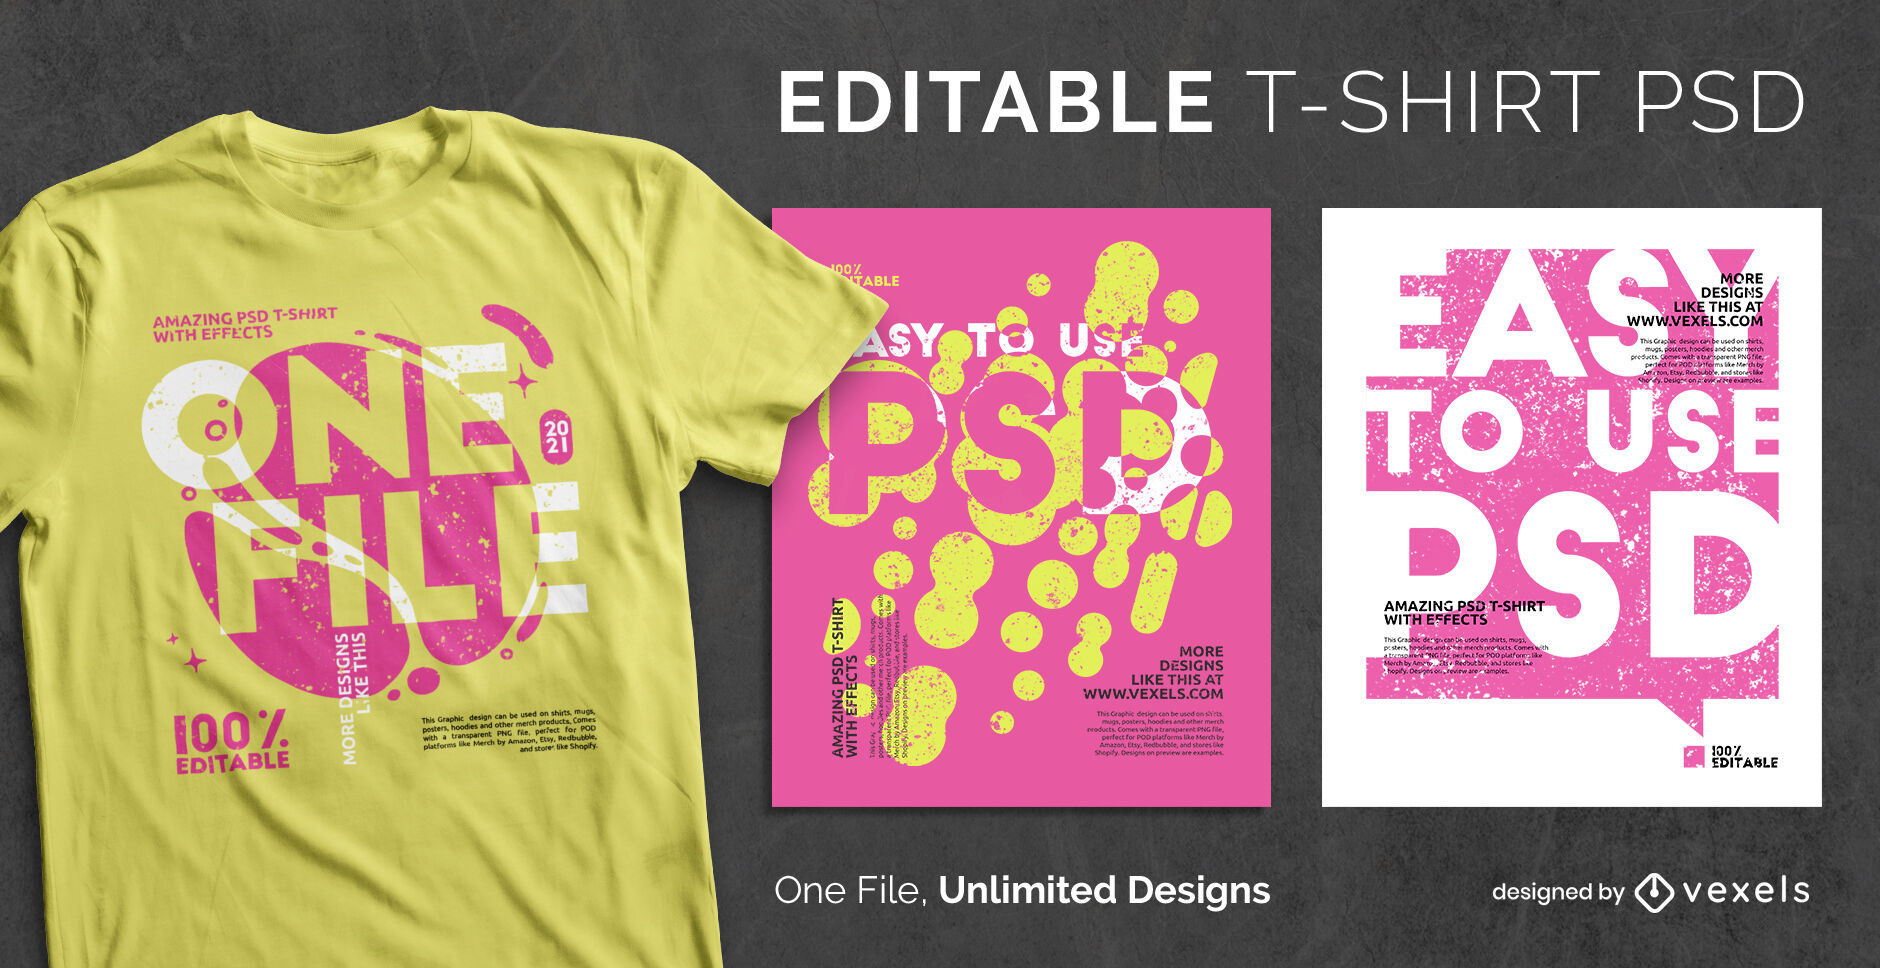 Text in contrast psd scalable t-shirt template